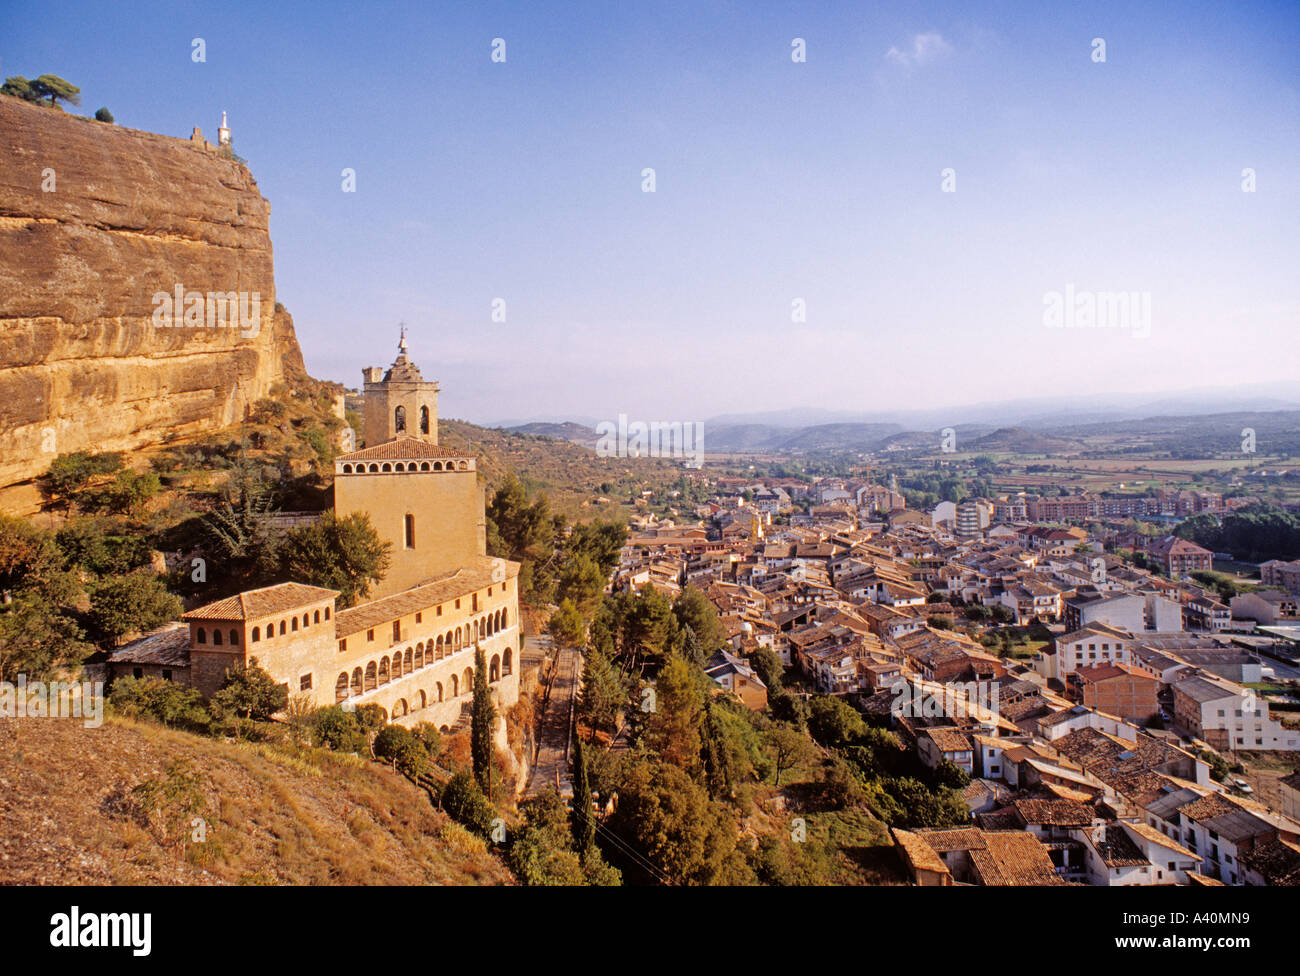 view of the church of san miguel  and the village of graus huesca aragon spain - Stock Image